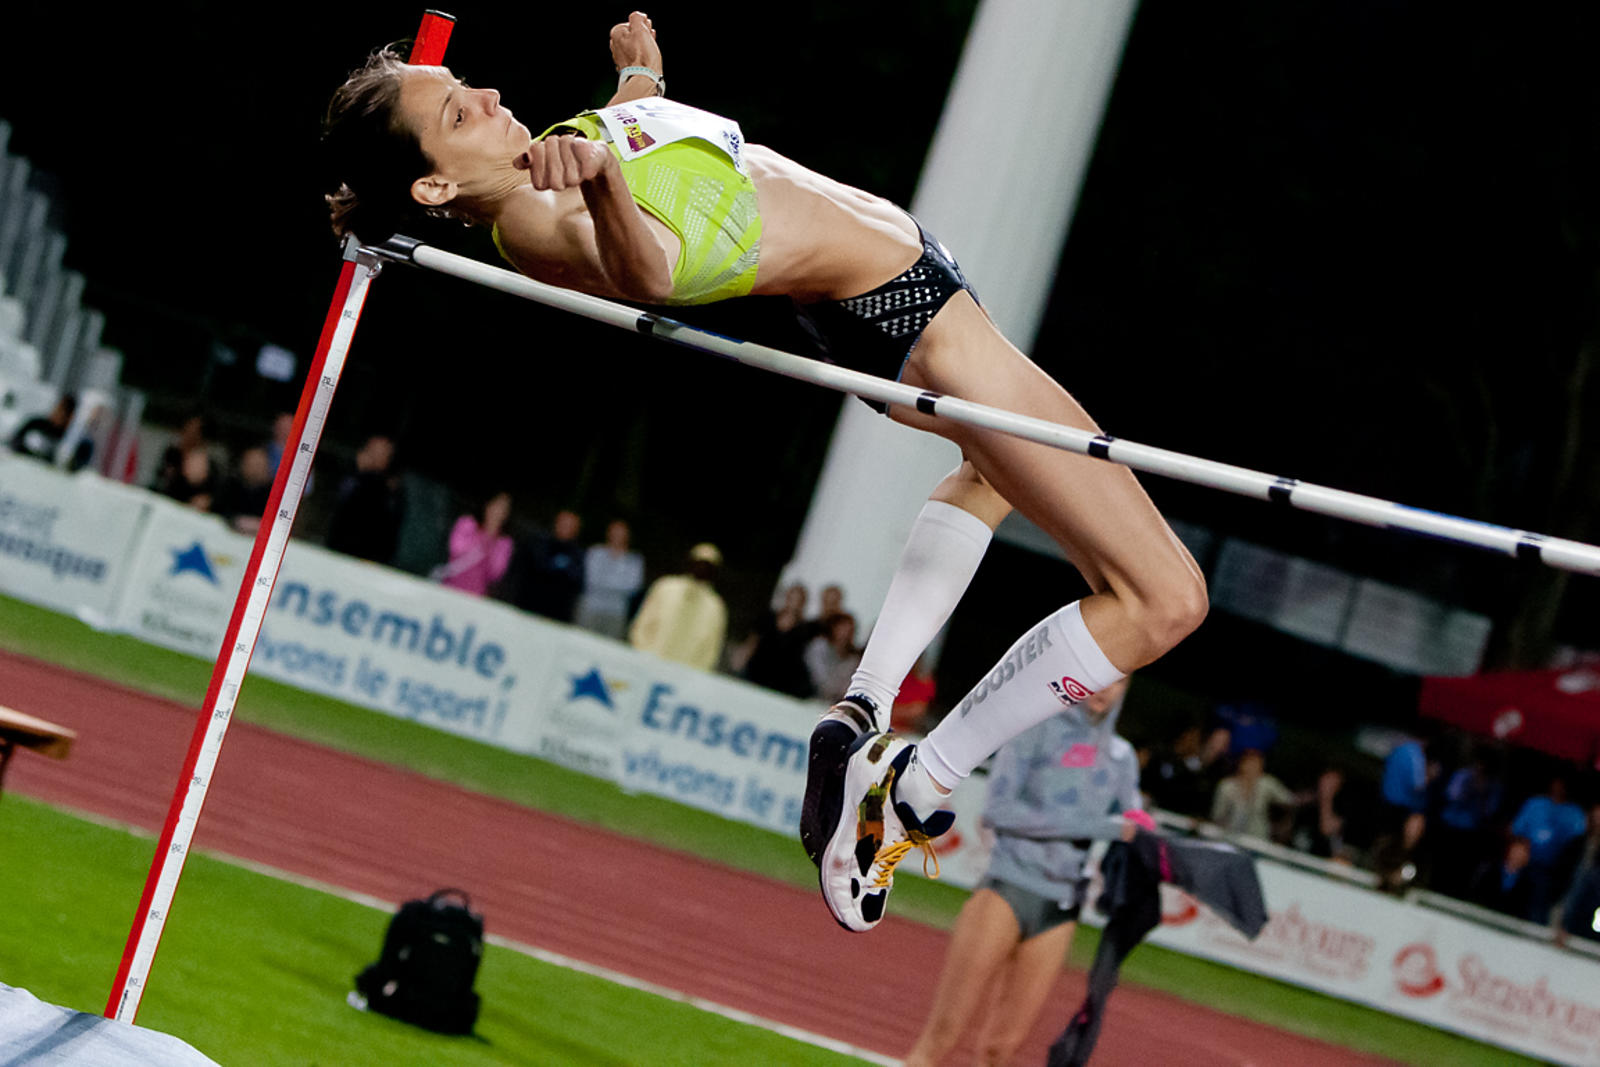 Athletics meeting of strasbourg